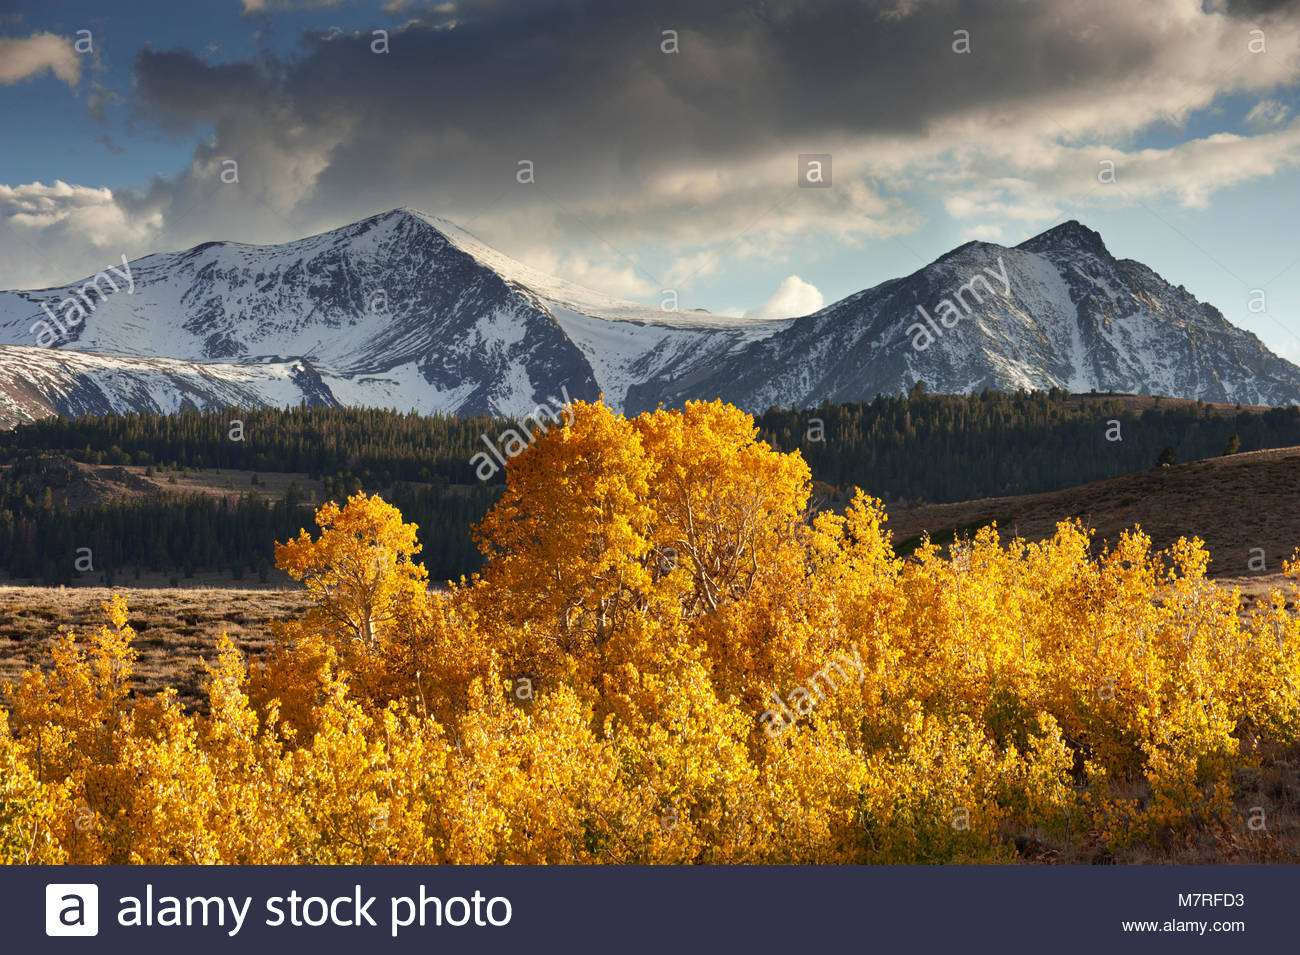 Mount Warren and Gilcrest Peak with Aspens and Clouds, Inyo National Forest, California - Stock Image